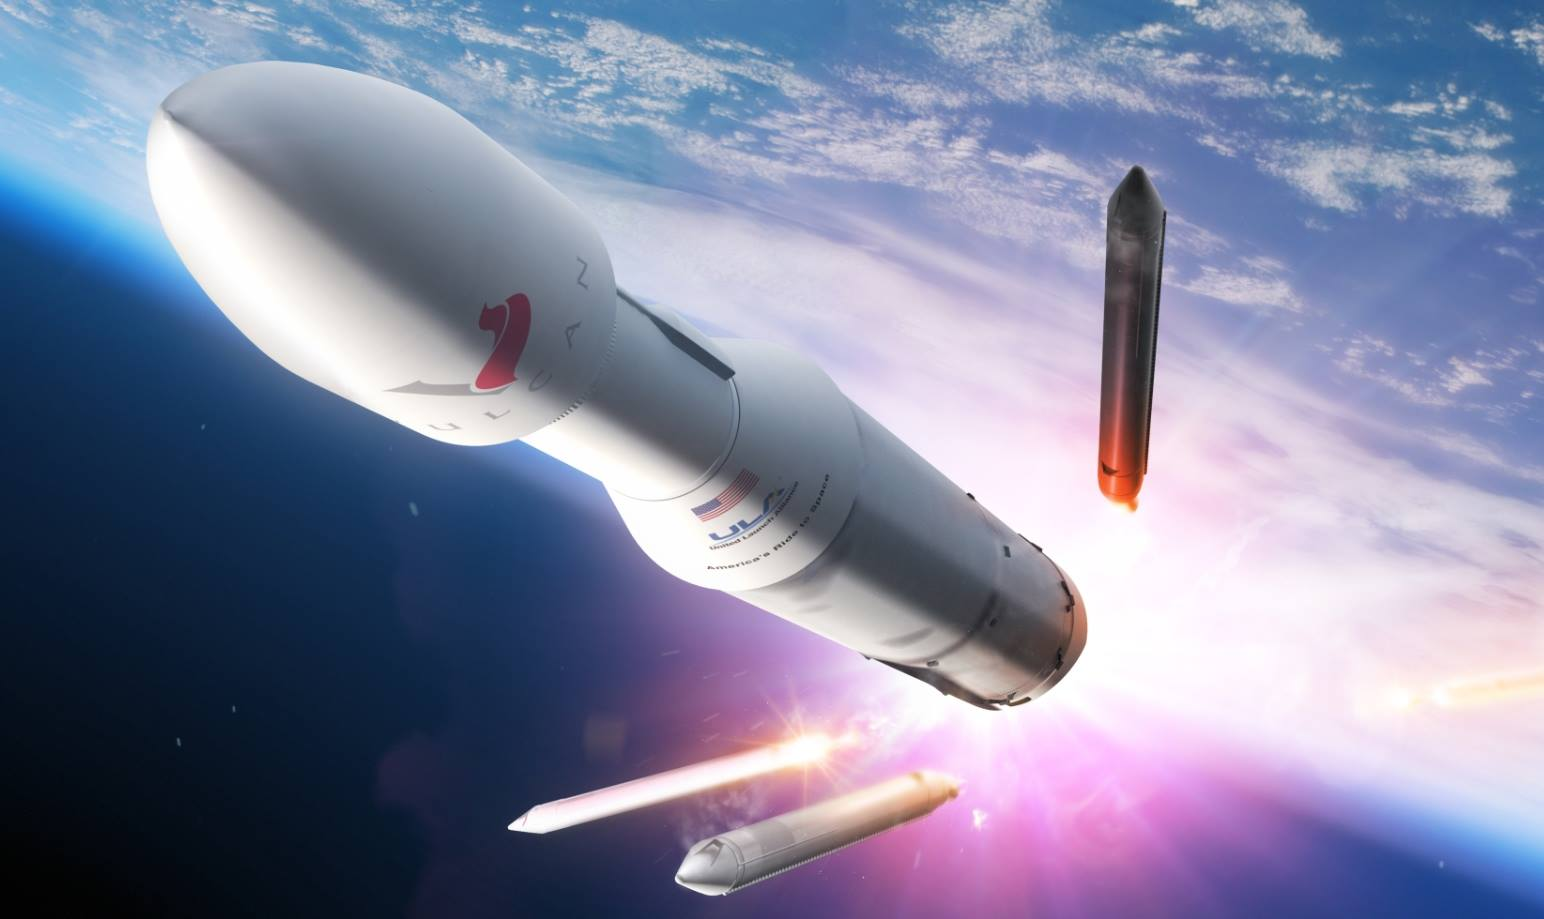 Artist's depiction of the Vulcan rocket rising up from Earth. Image Credit: United Launch Alliance